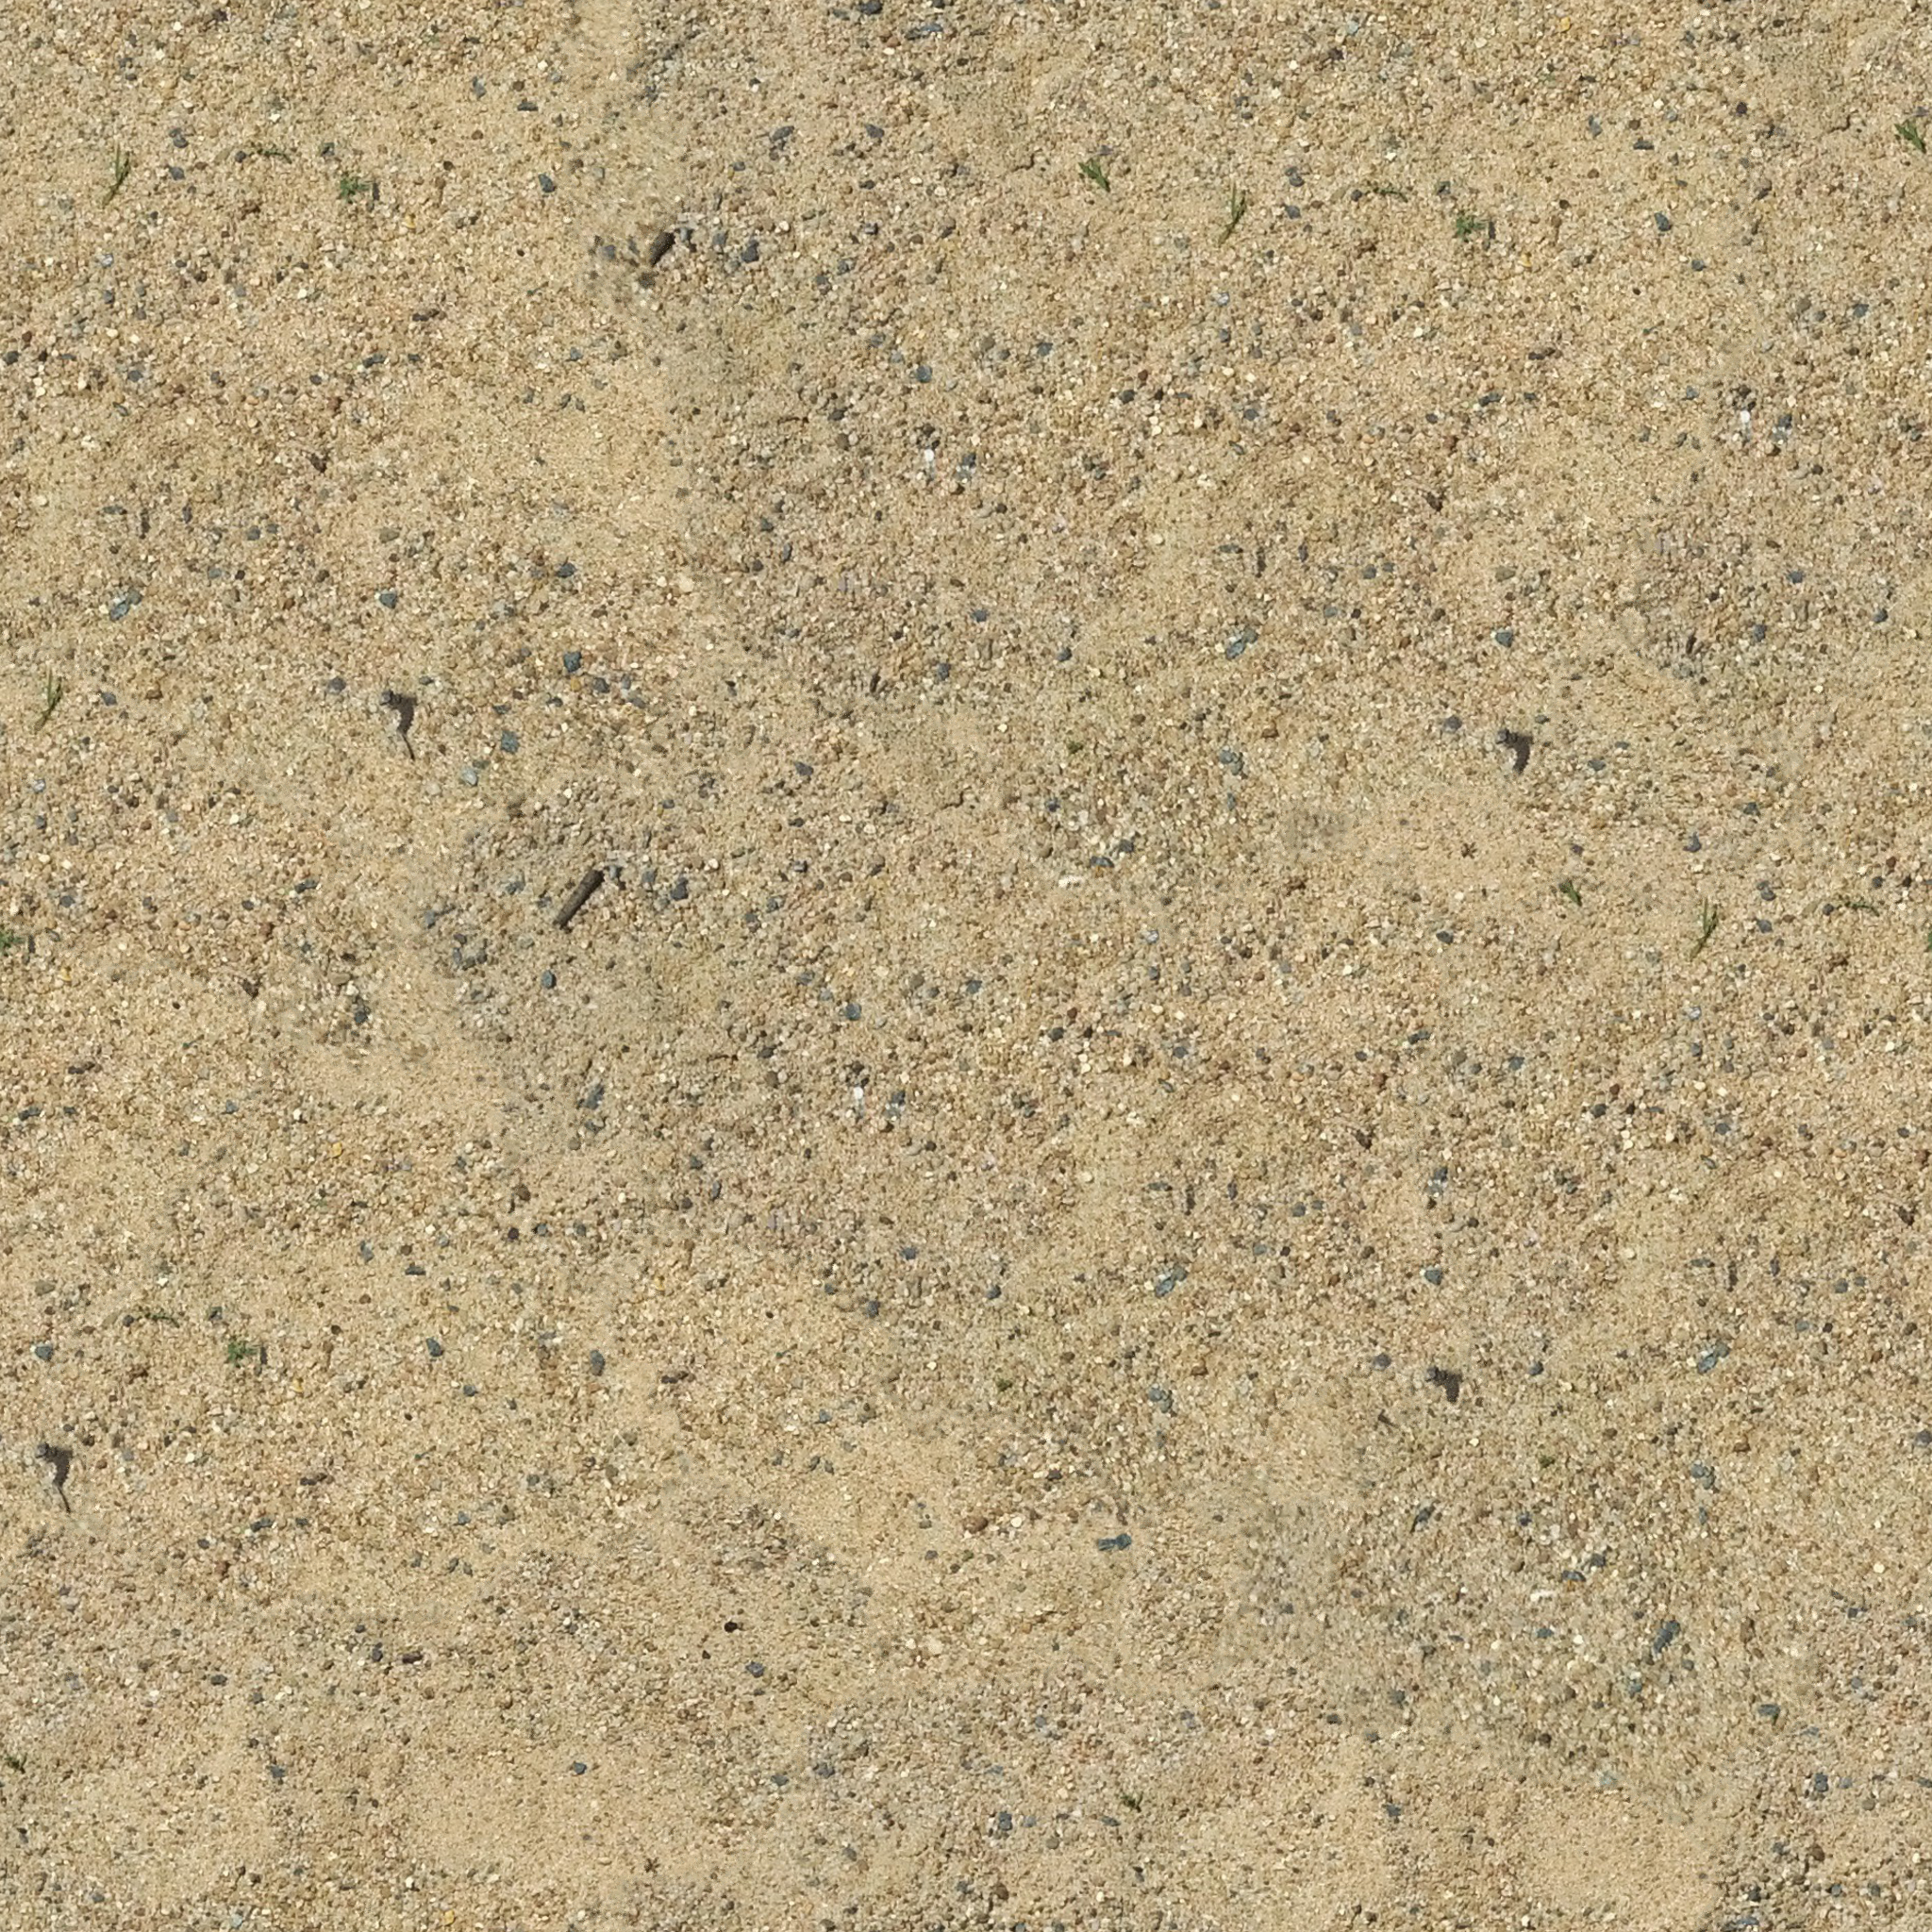 Arid Ground Textures Sand 03 2048x2048 Png Opengameart Org